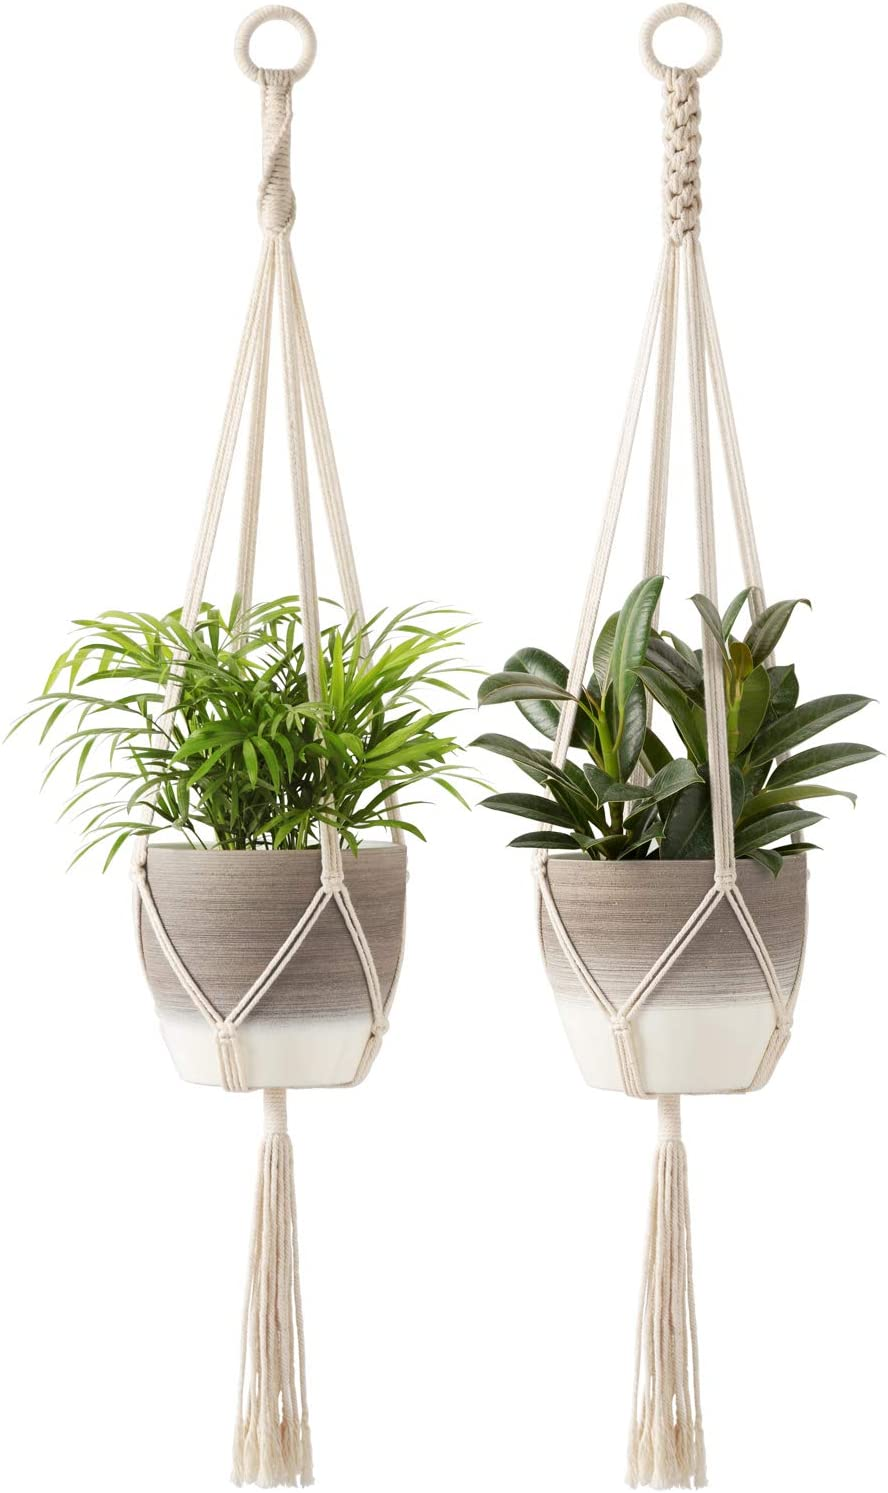 Mkono Macrame Plant Hangers Indoor Hanging Planter Basket Cotton Rope Flower Pot Holder Boho Home Decor Set of 2, 39 Inches